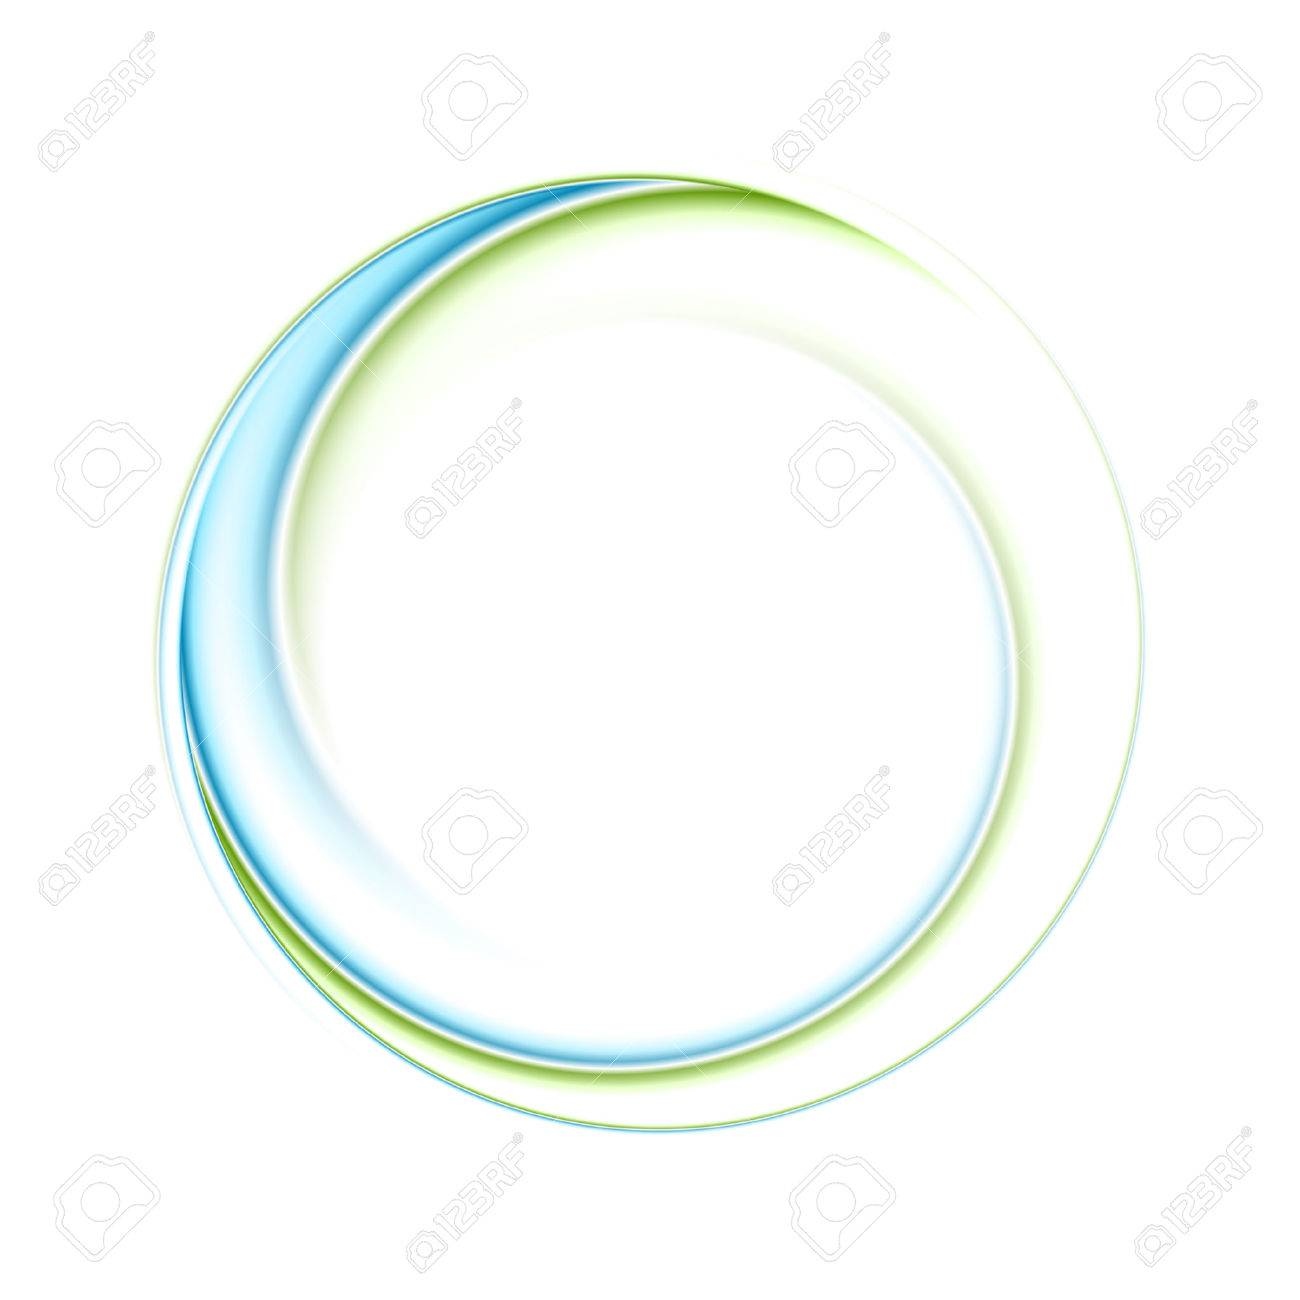 Abstract bright blue green iridescent circle logo. Vector graphic background - 71141970